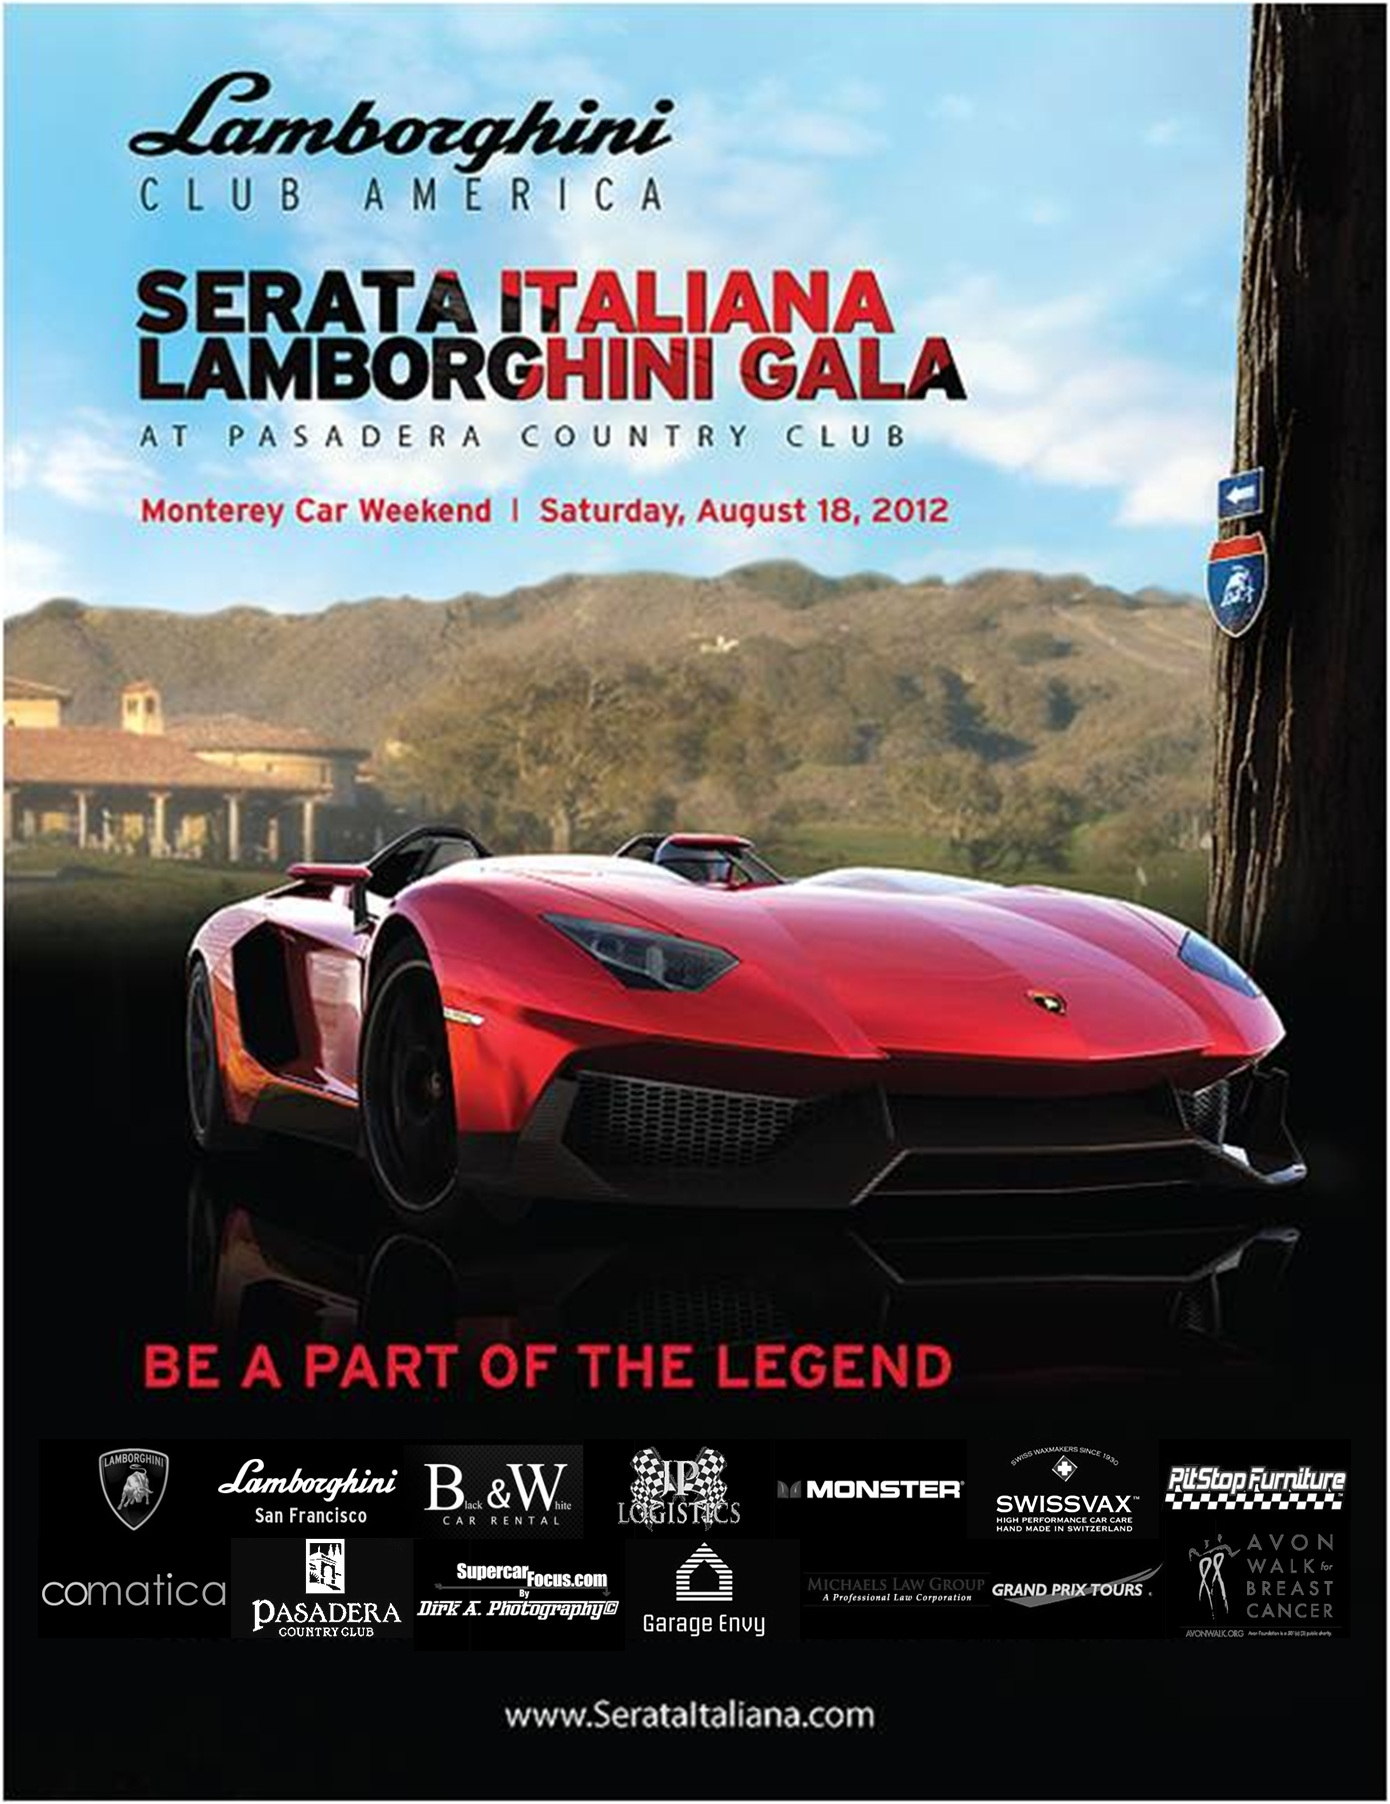 Serata Italiana with Sponsors